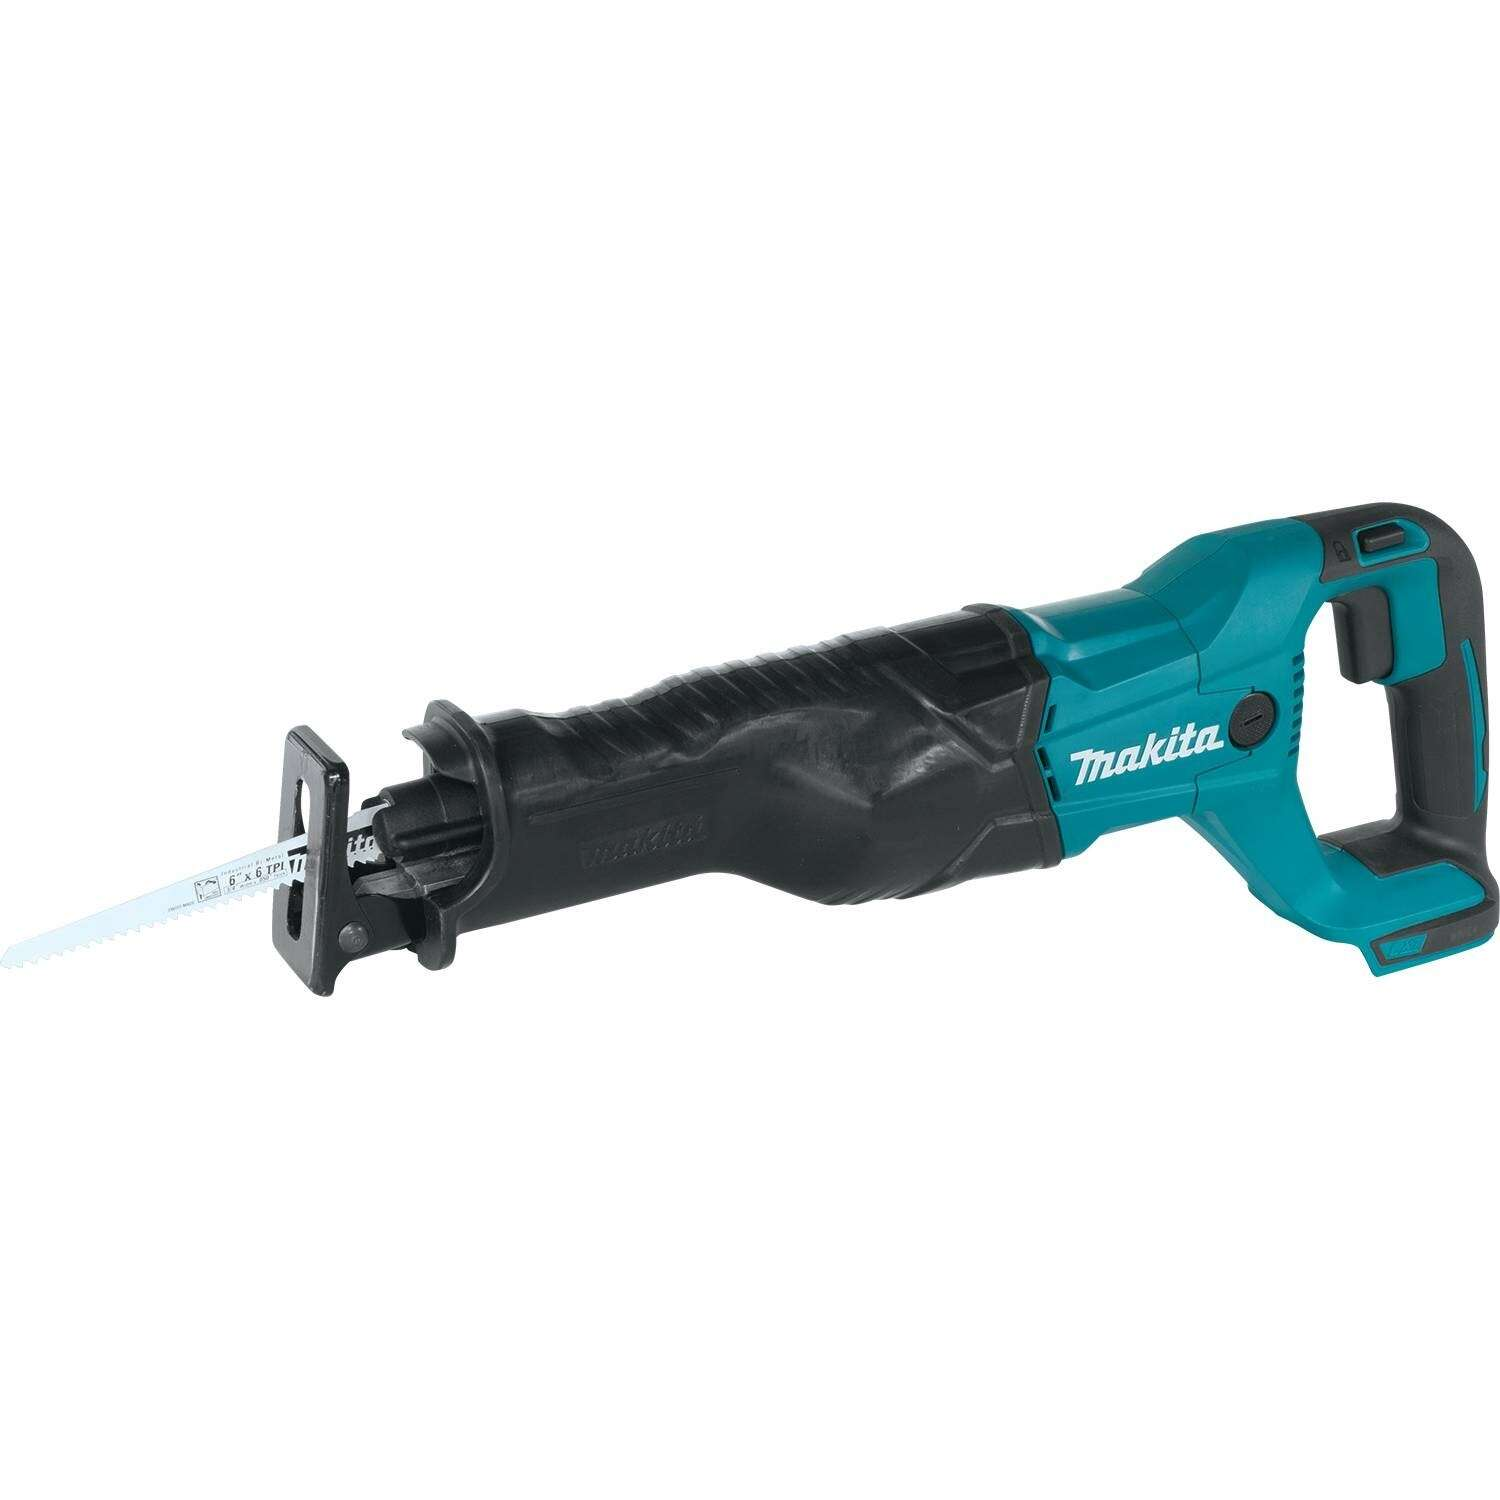 Makita  LXT  18 volt Cordless  Brushed  Reciprocating Saw  Tool Only